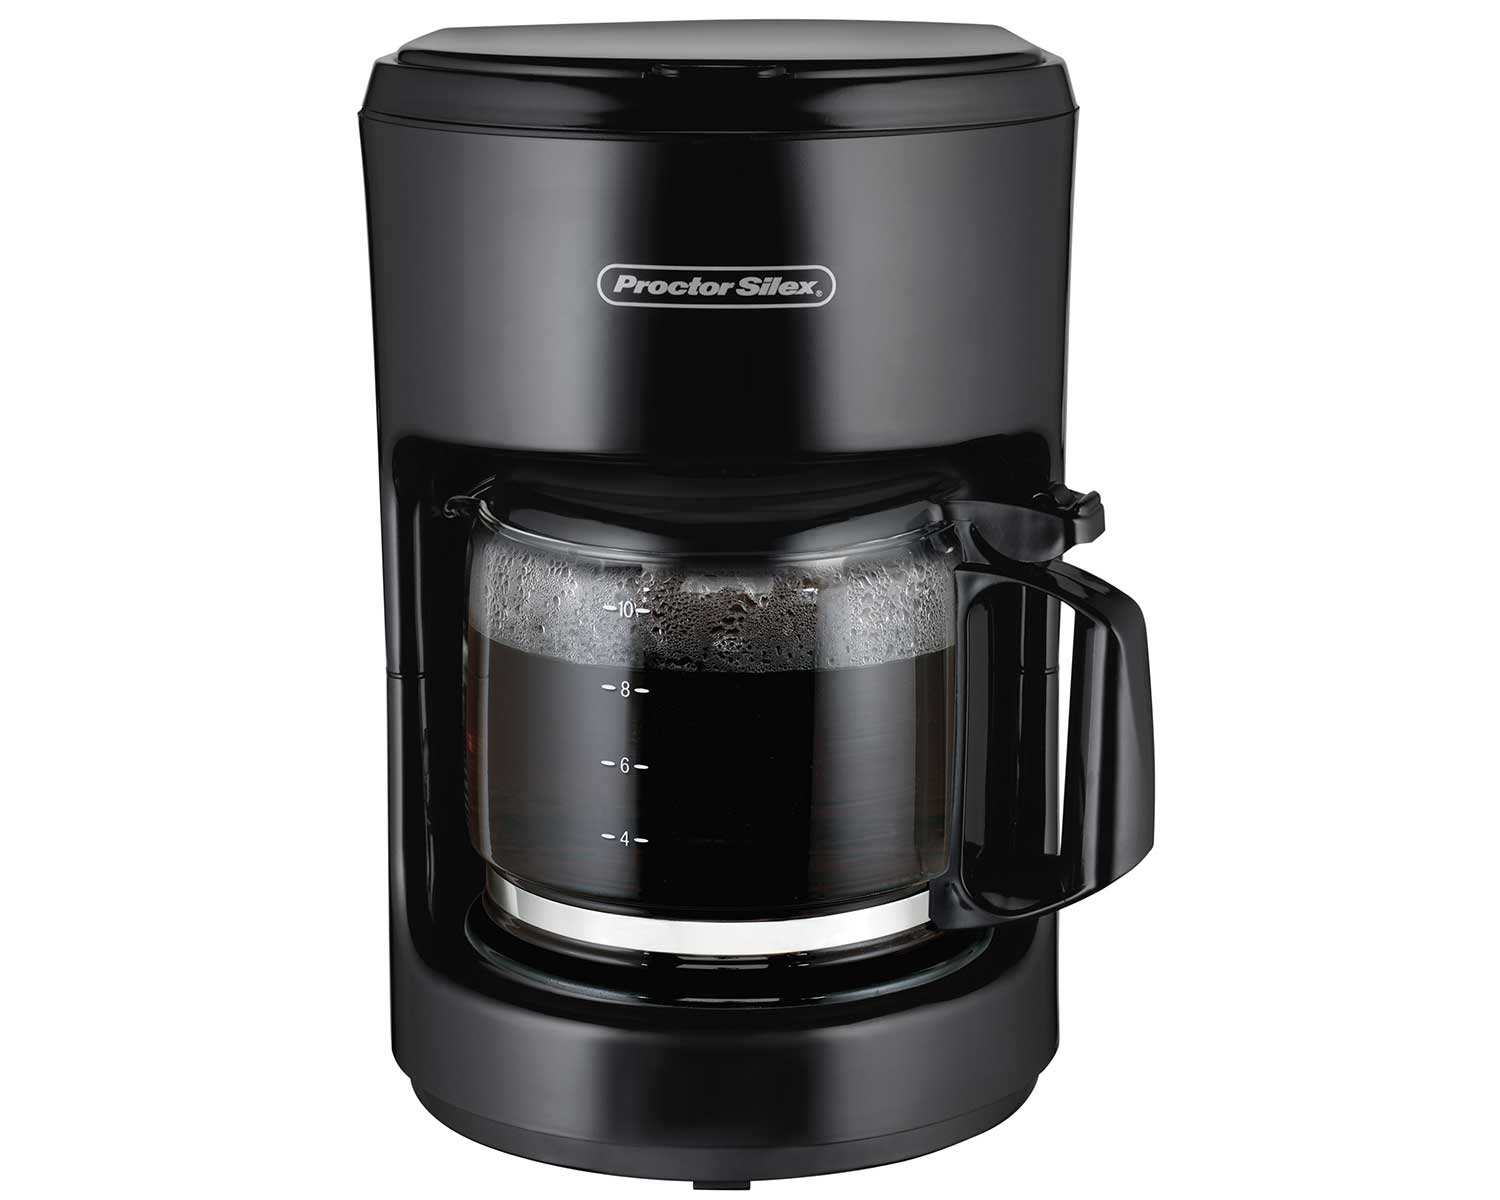 10 Cup Coffee Maker (black)-48351 Small Size